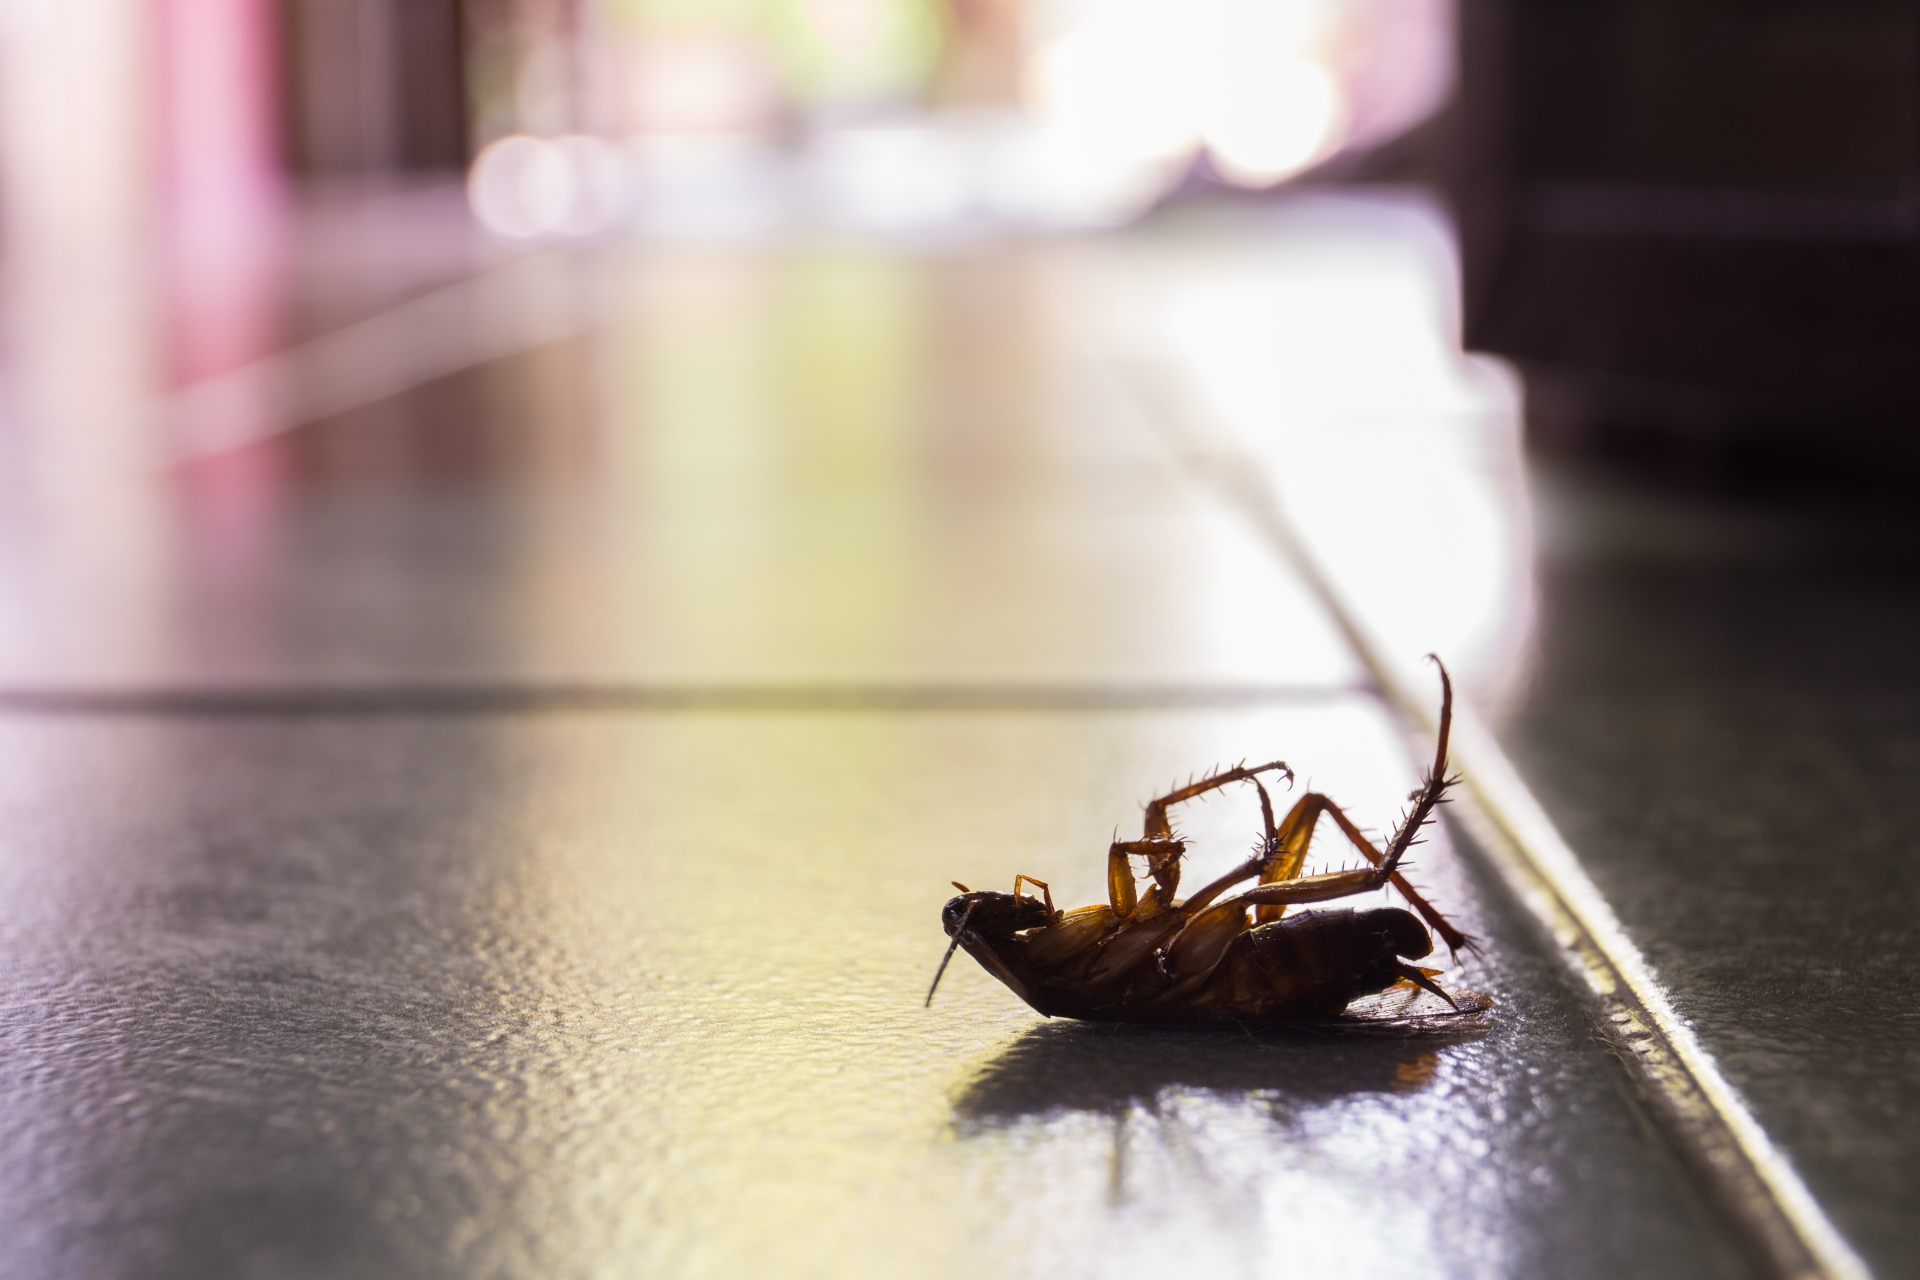 Cockroach Control, Pest Control in Stanmore, Queensbury, HA7. Call Now 020 8166 9746